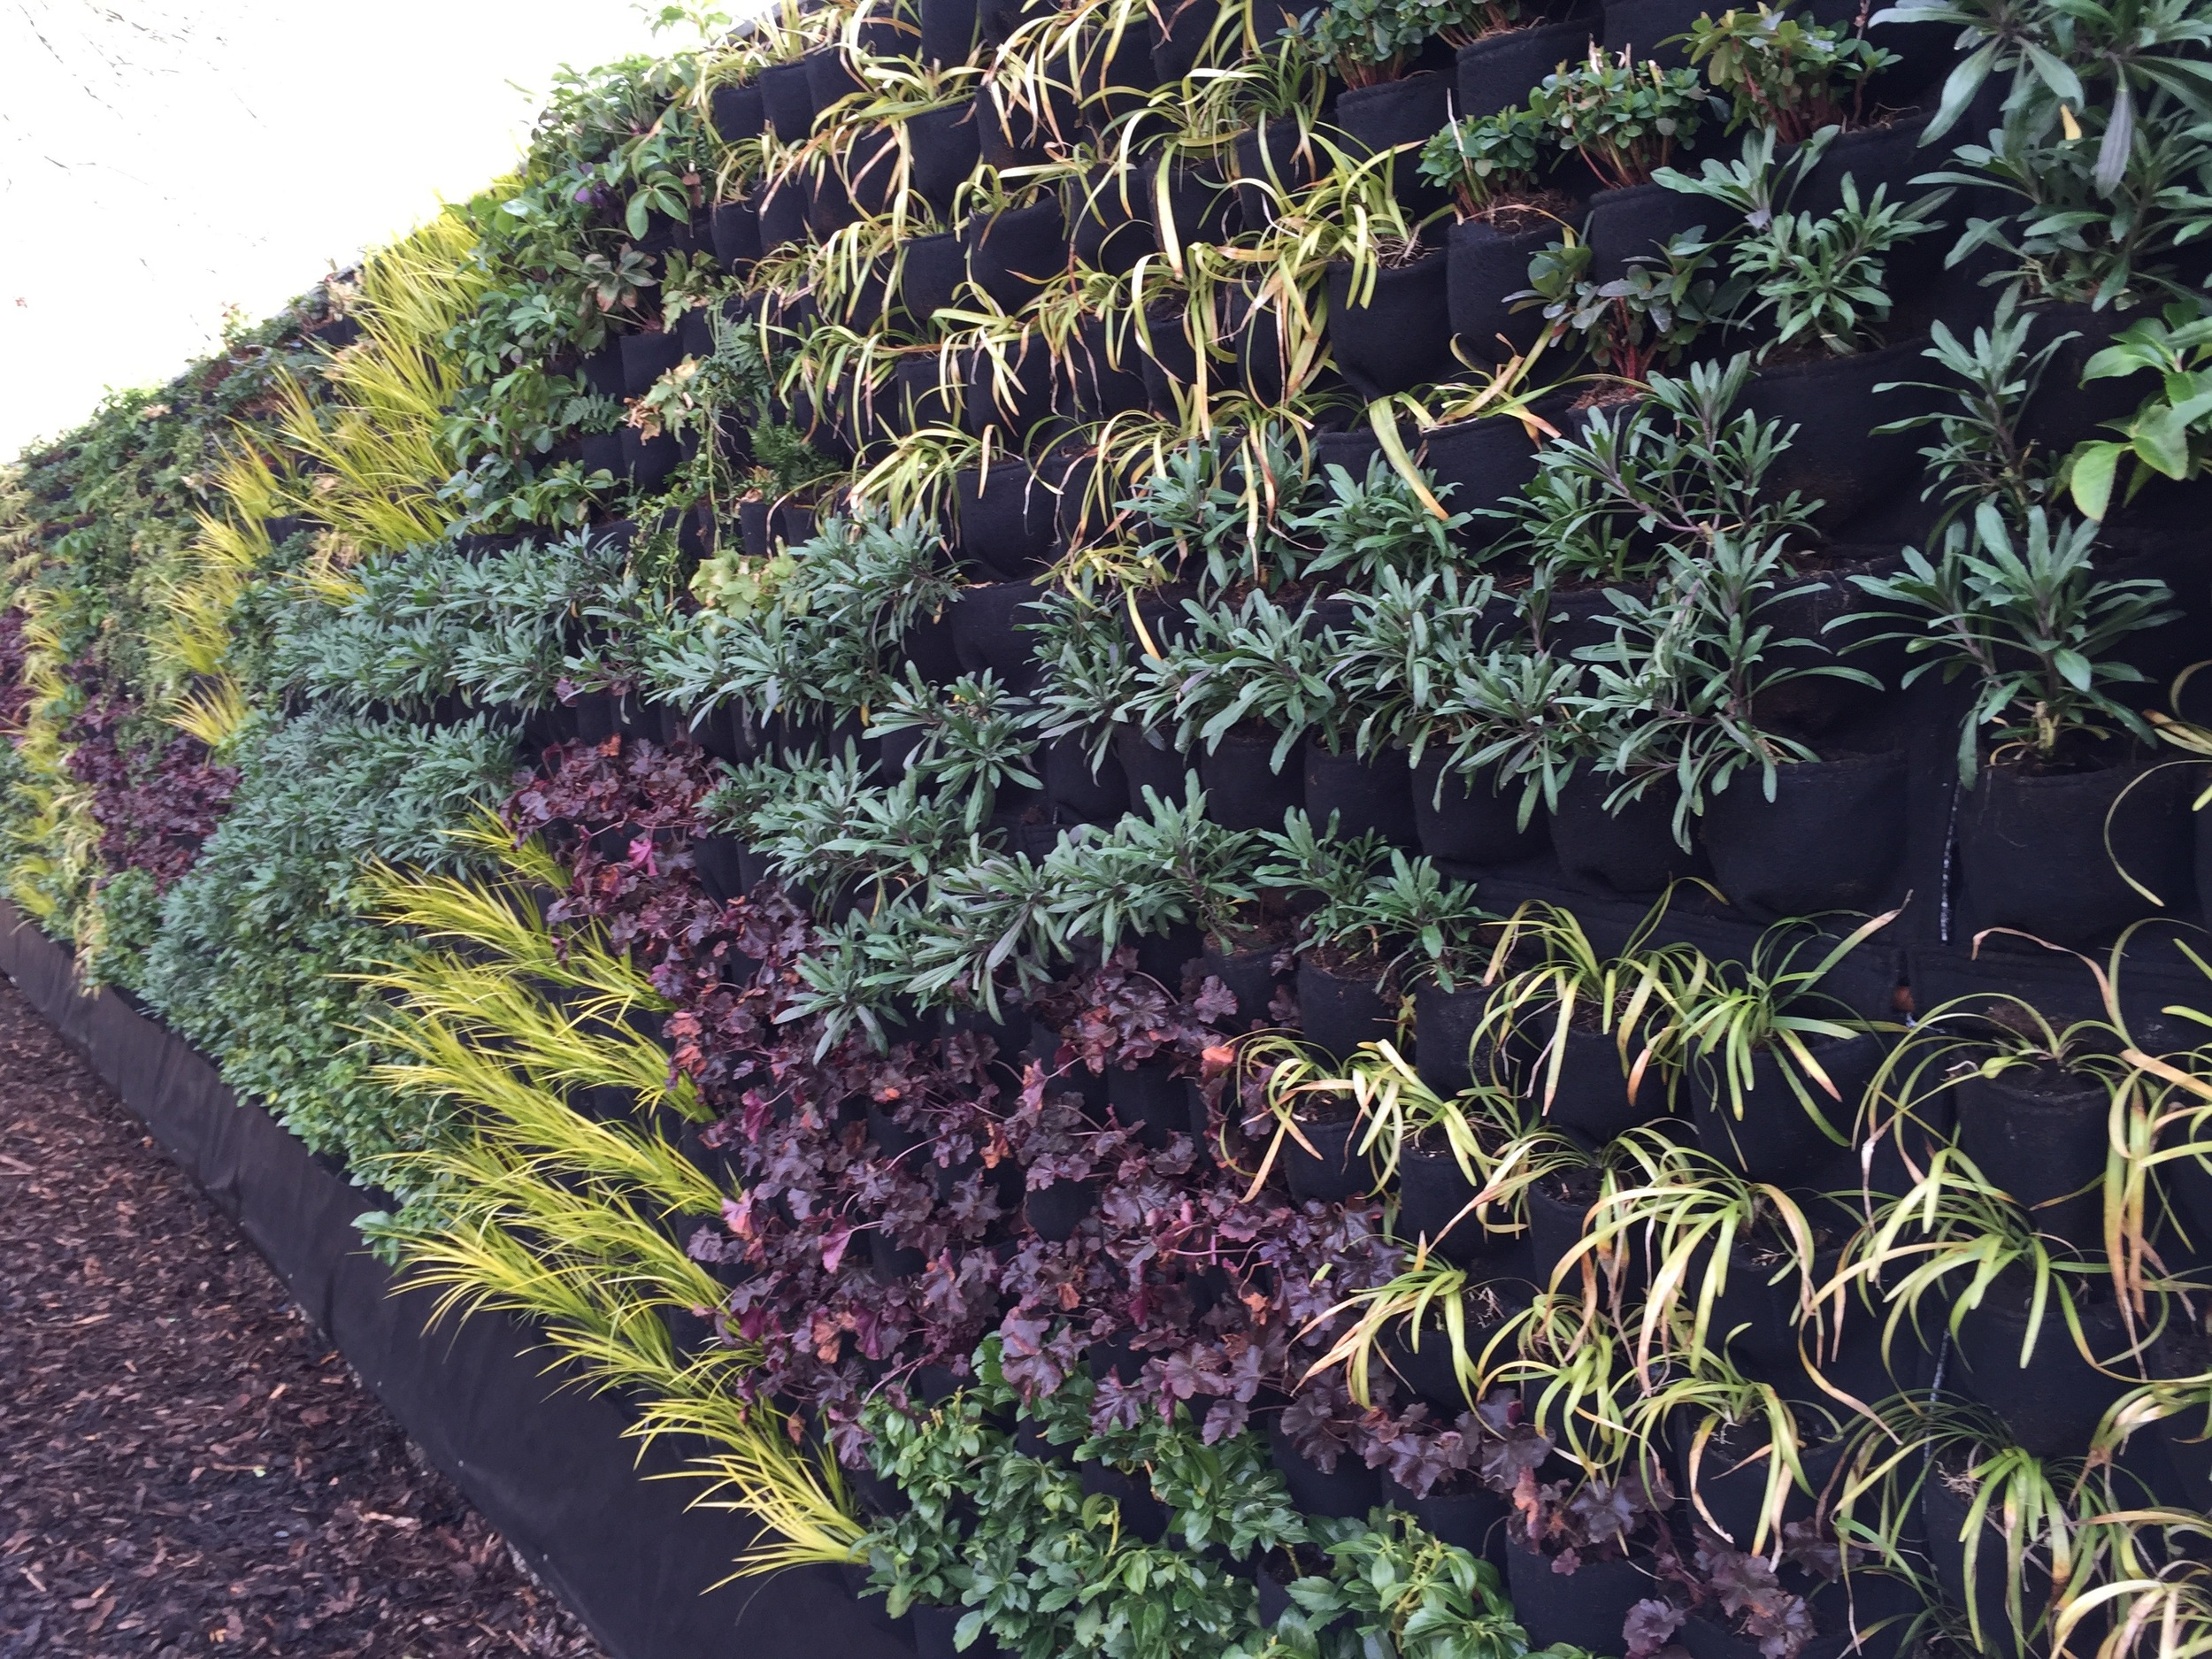 An example of a green wall using the fabric-based system we are using at Chelsea.